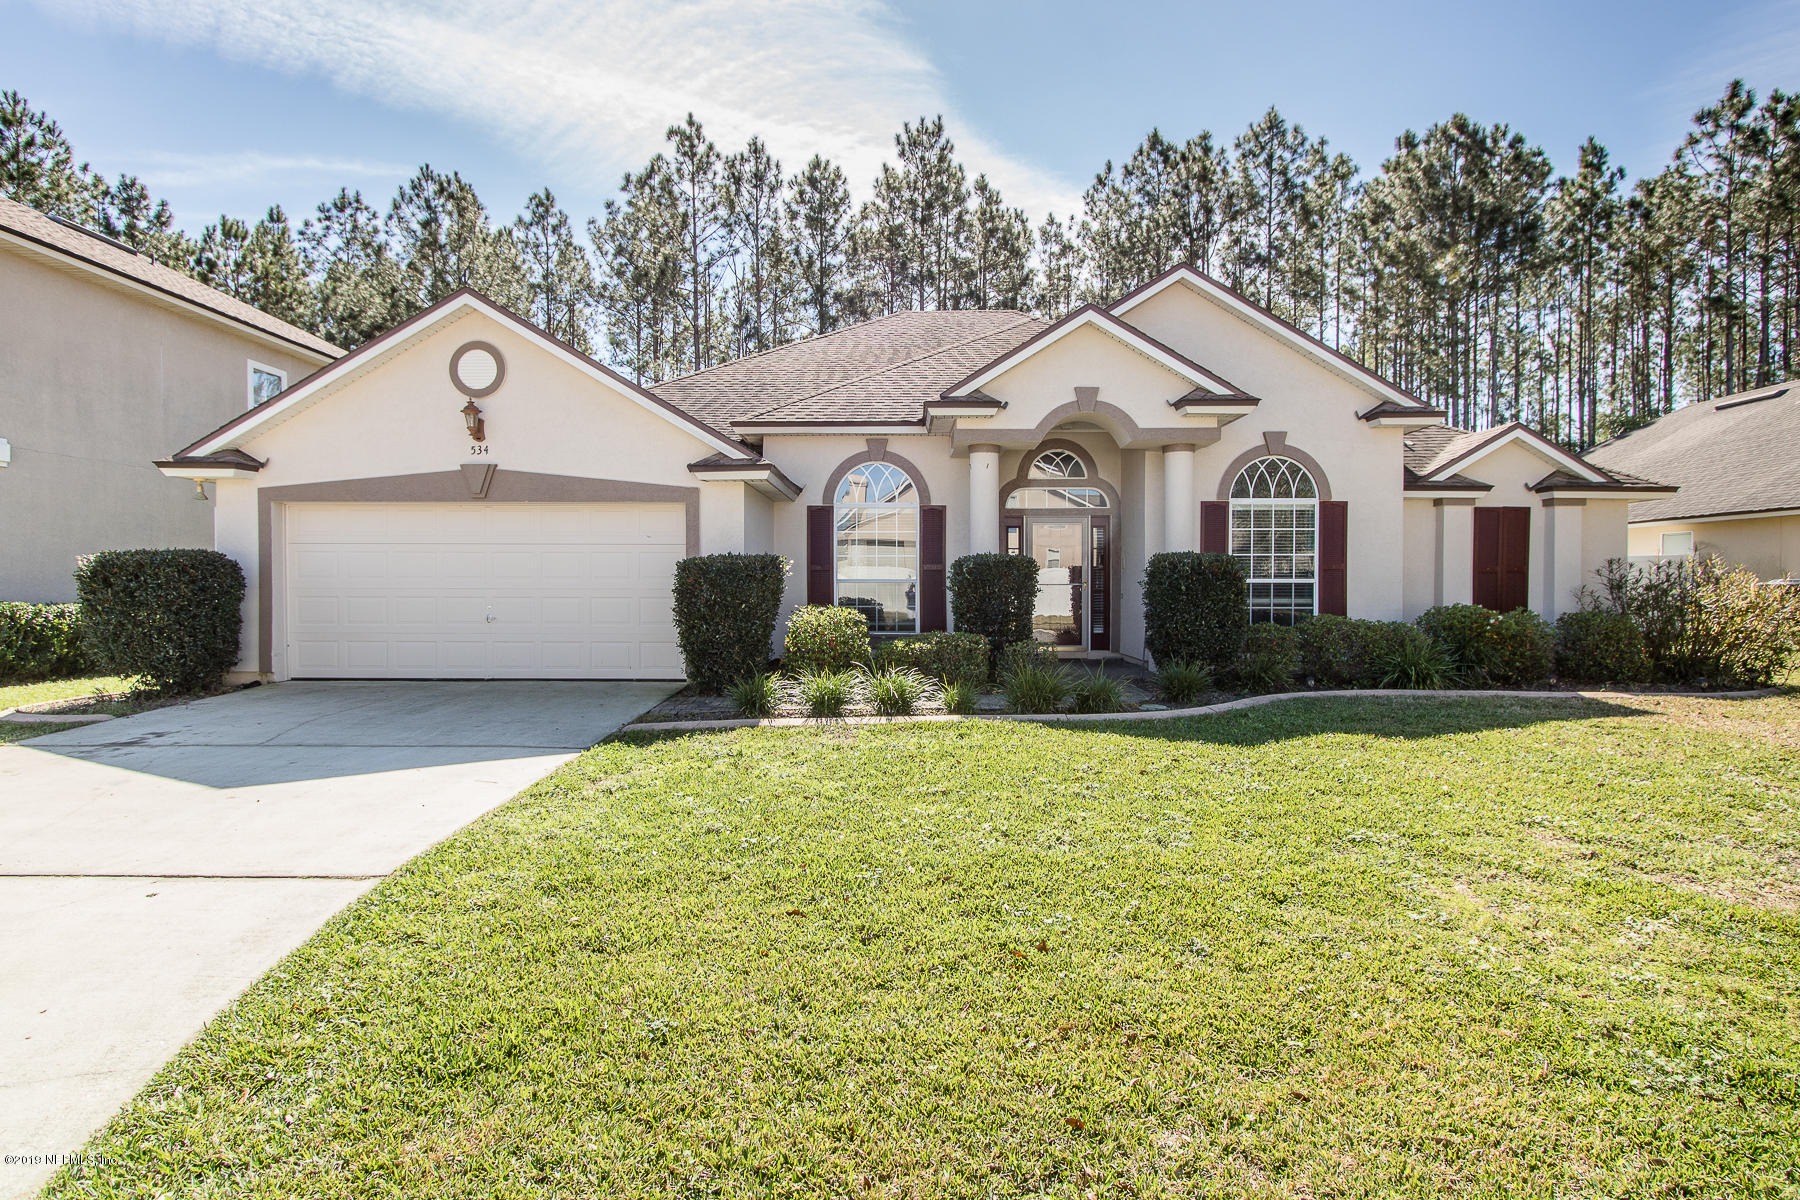 534 CHESTWOOD CHASE, ORANGE PARK, FLORIDA 32065, 4 Bedrooms Bedrooms, ,3 BathroomsBathrooms,Residential - single family,For sale,CHESTWOOD CHASE,982304